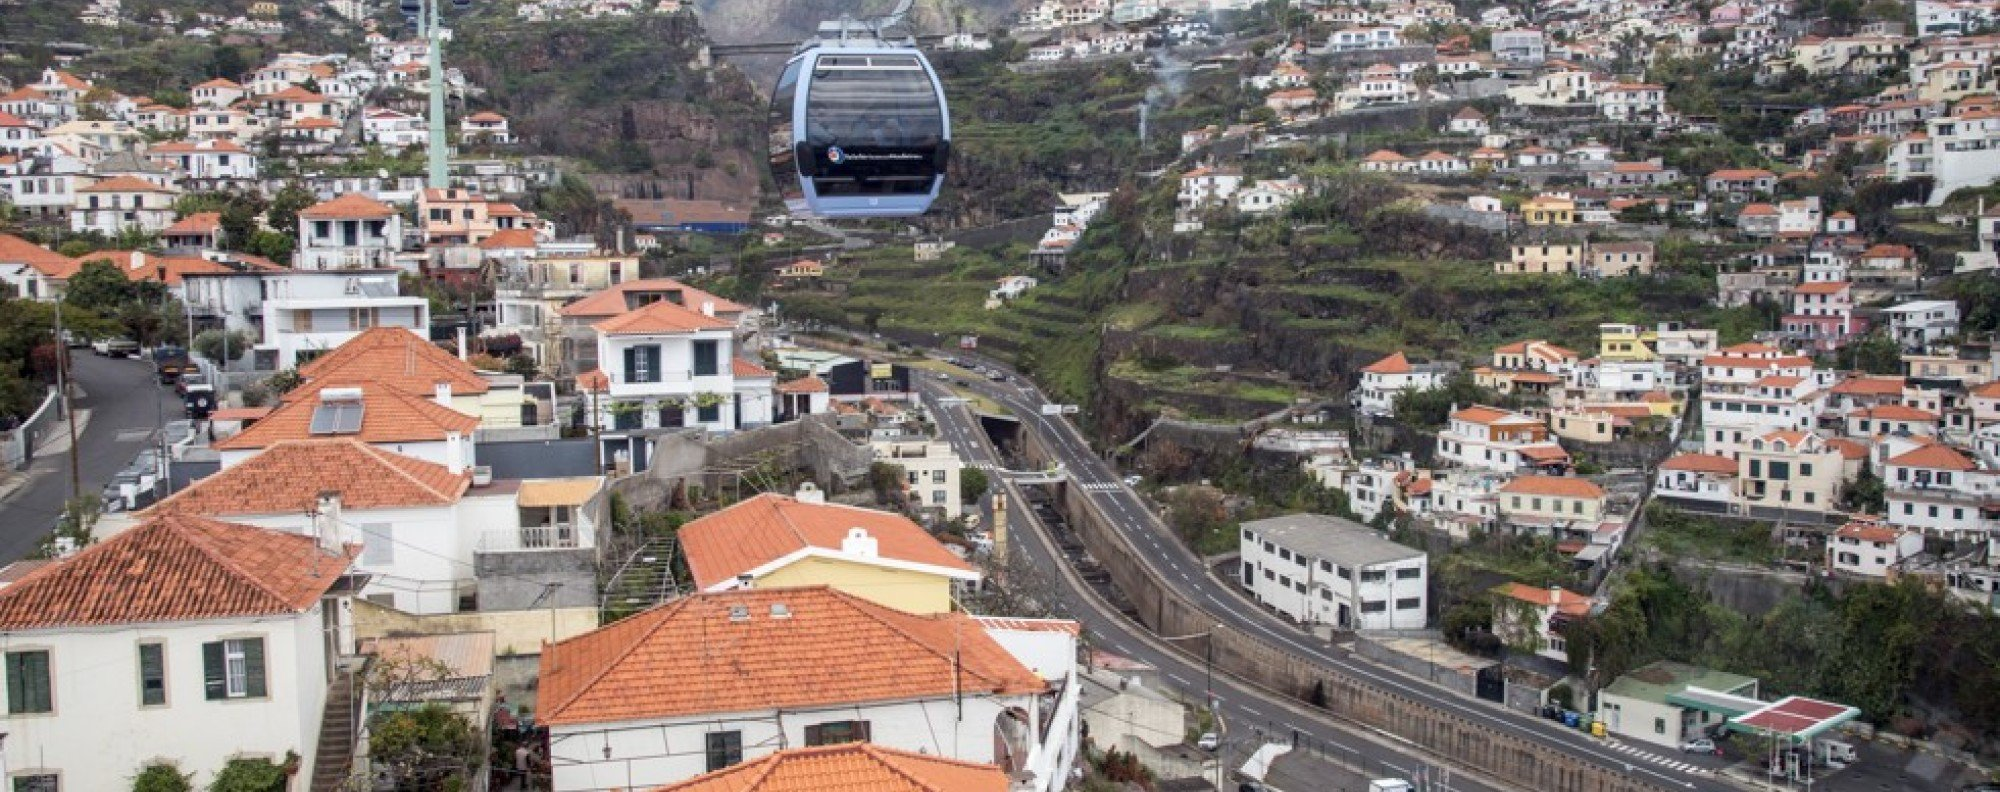 A cable car glides over Funchal, the capital of Madeira, Portugal.